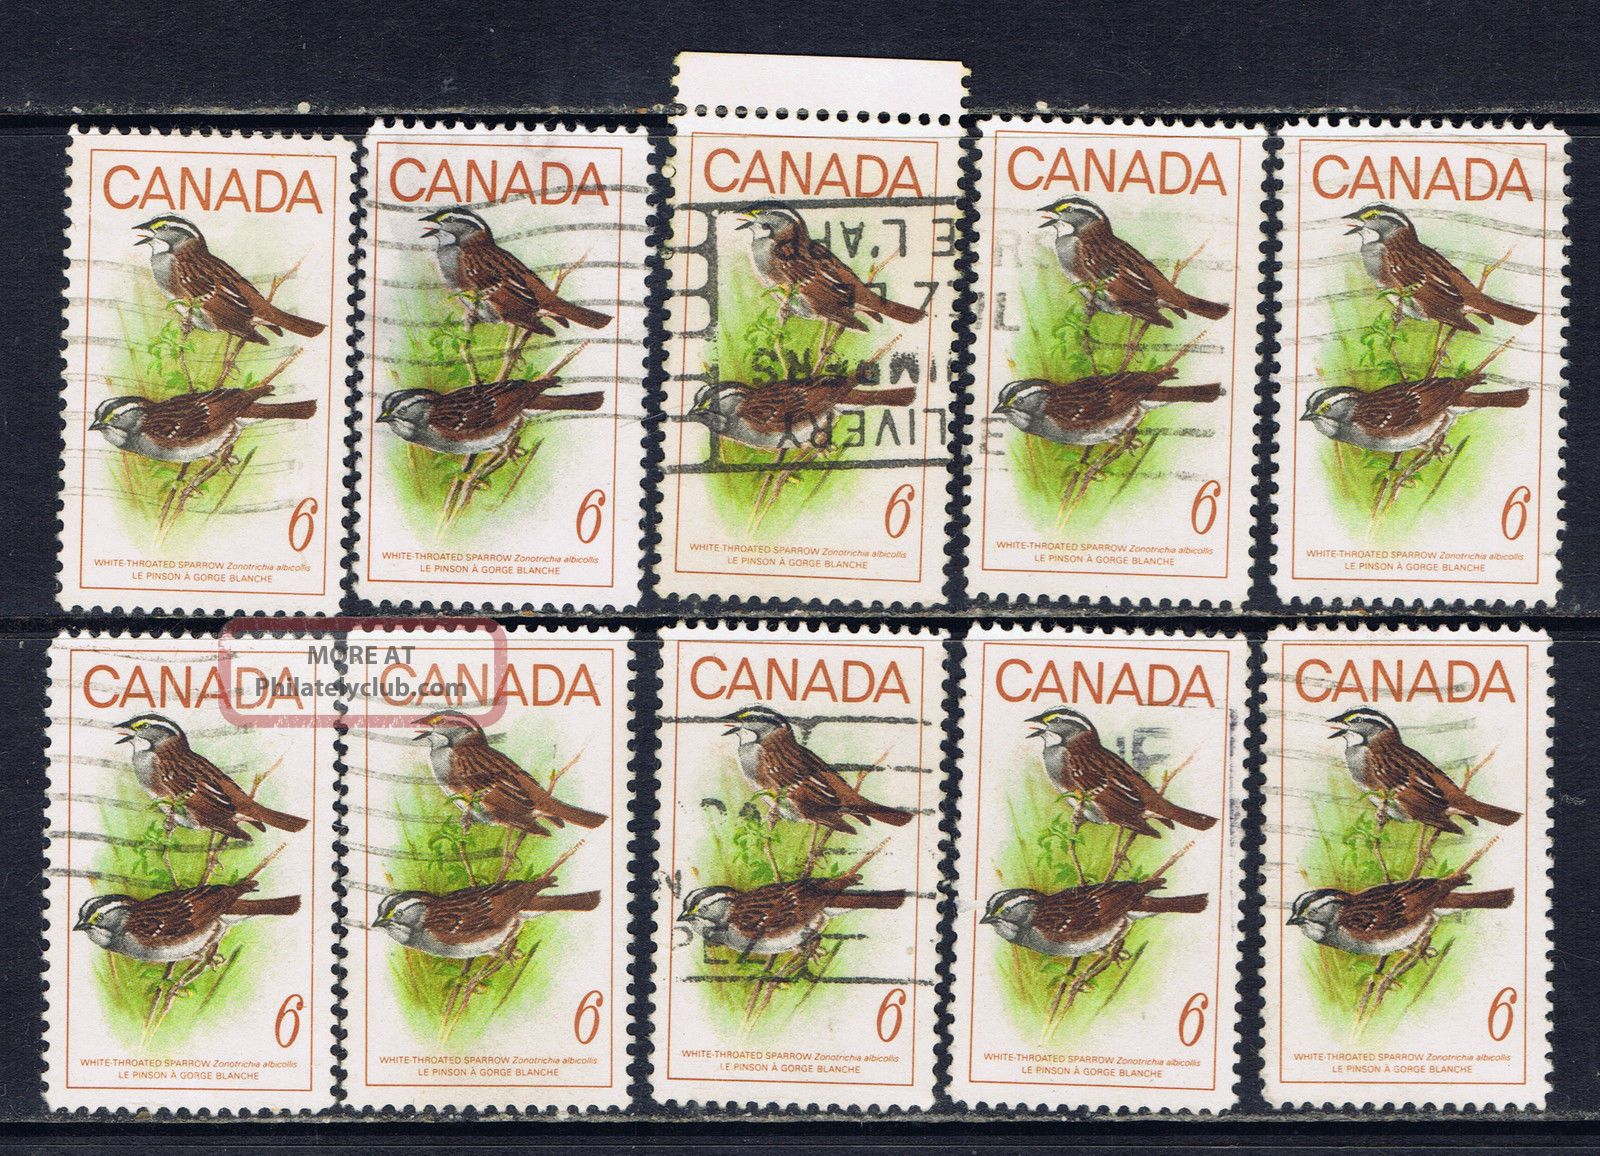 Canada 496 (1) 1969 6 Cent Canadian Birds - White - Throated Sparrow 10 Canada photo